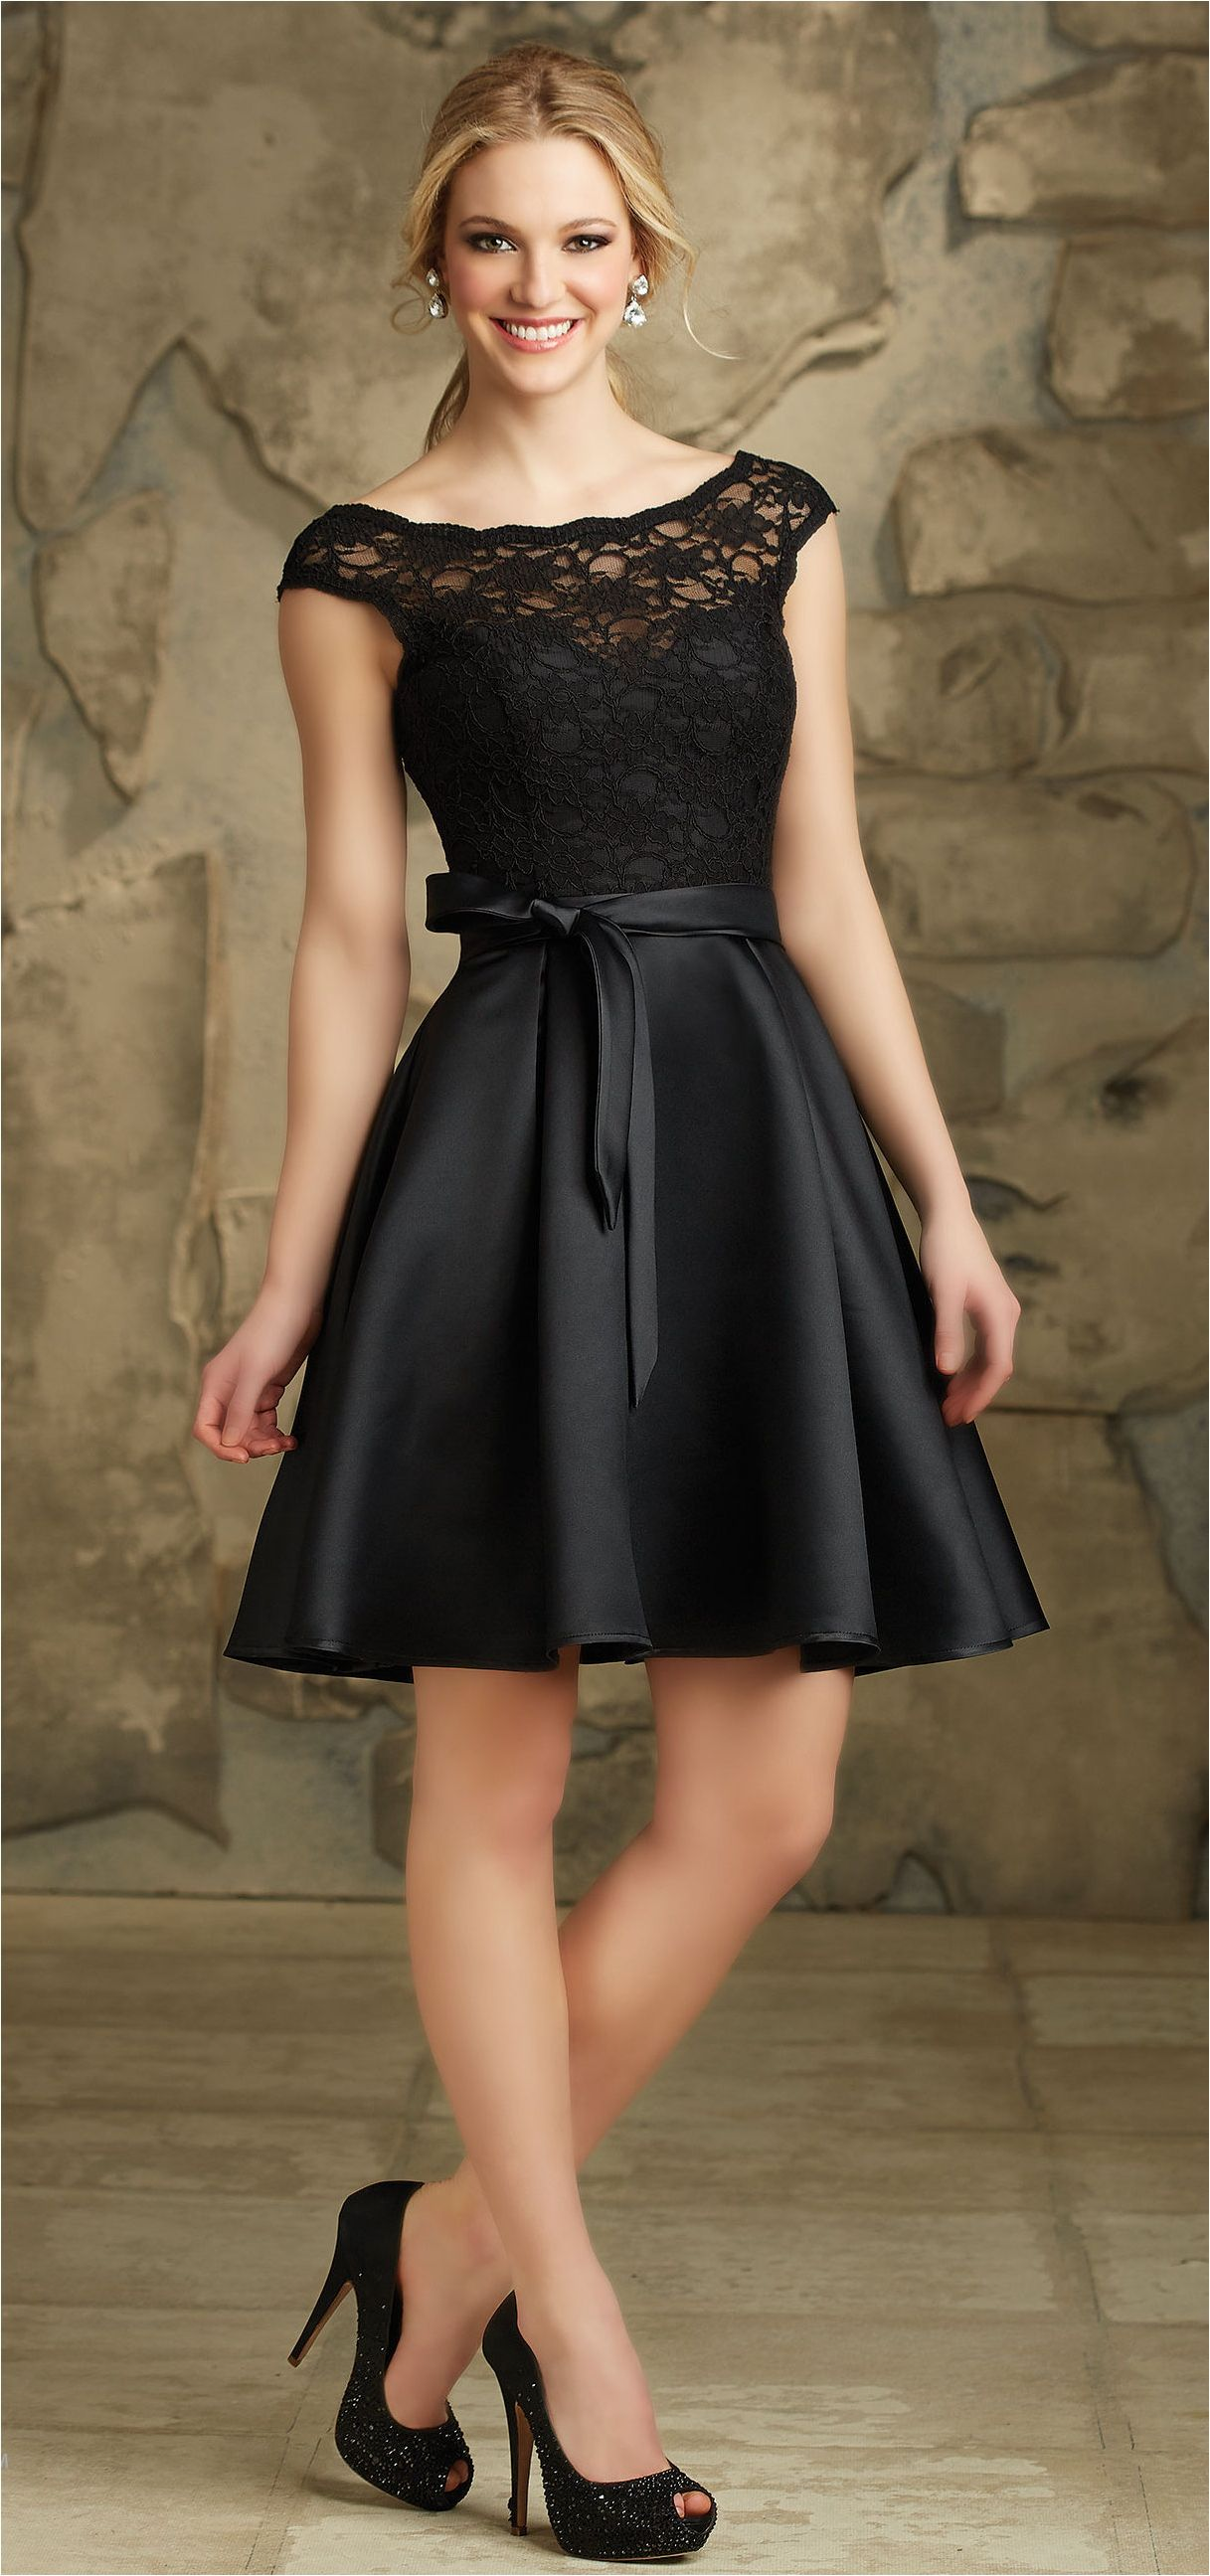 Black dresses for wedding   Cute Lace Short Bridesmaid Dresses Trends and Ideas  jEsSy